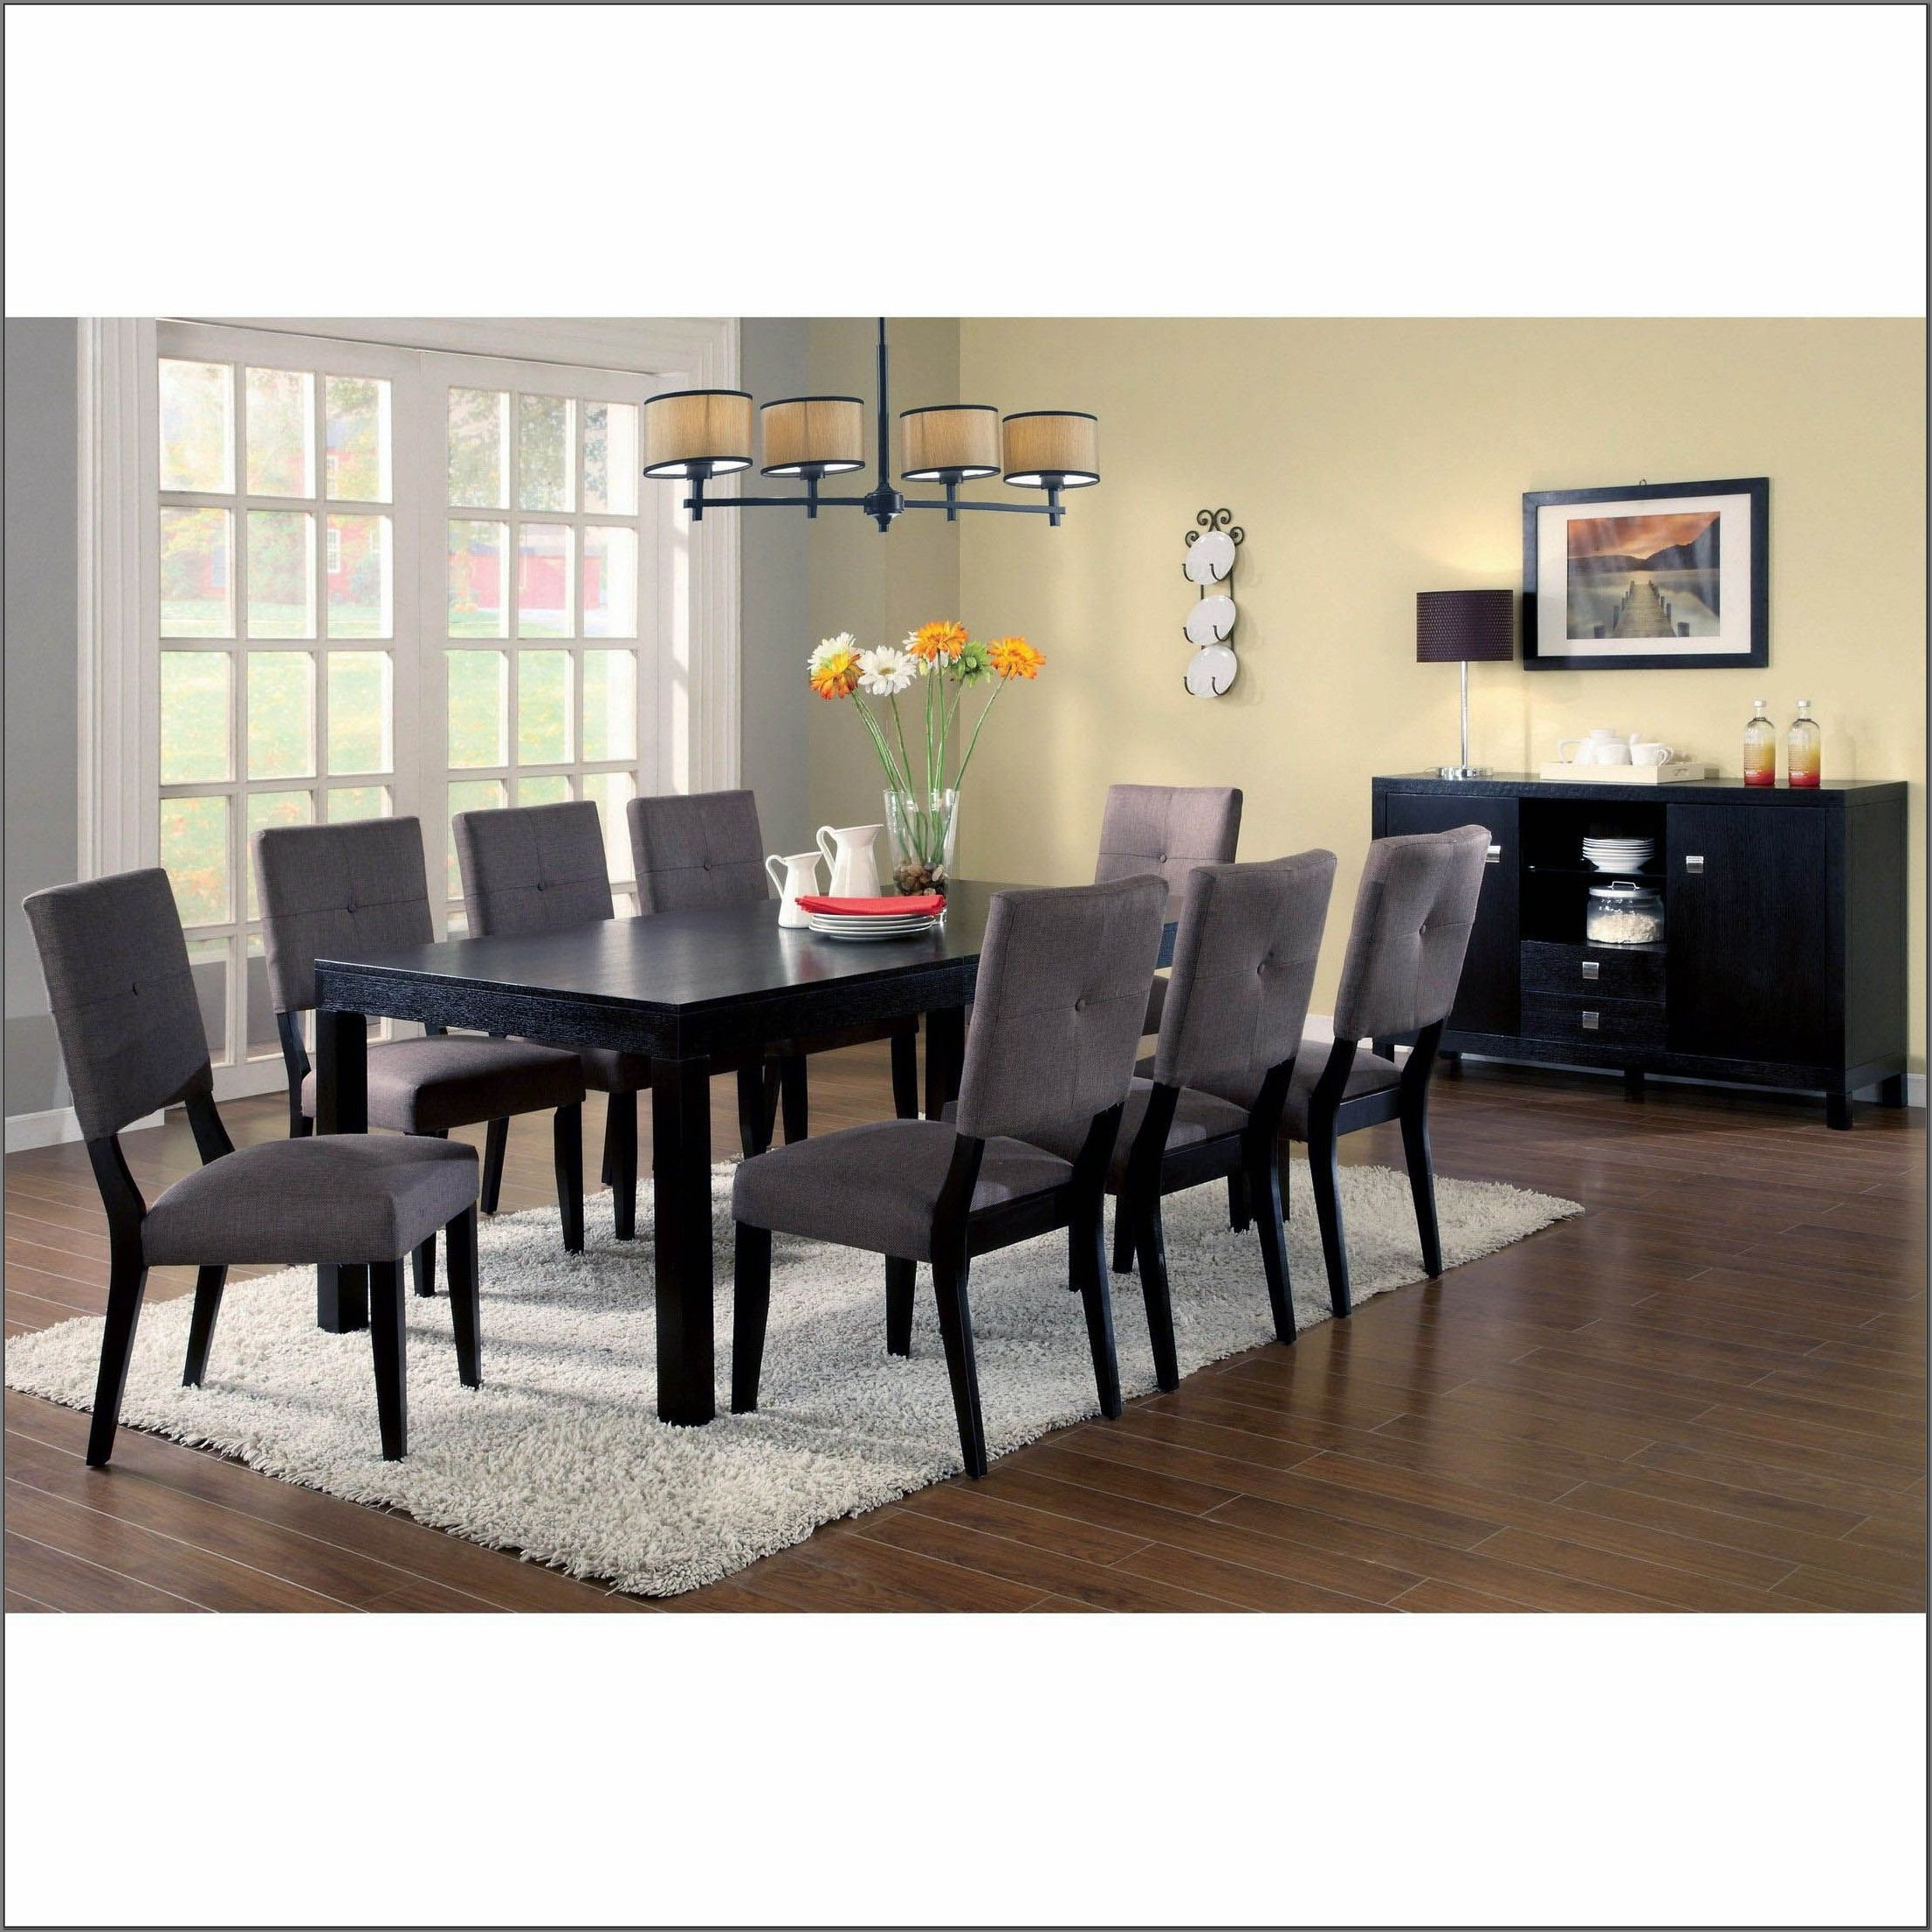 14 Seater Dining Room Table